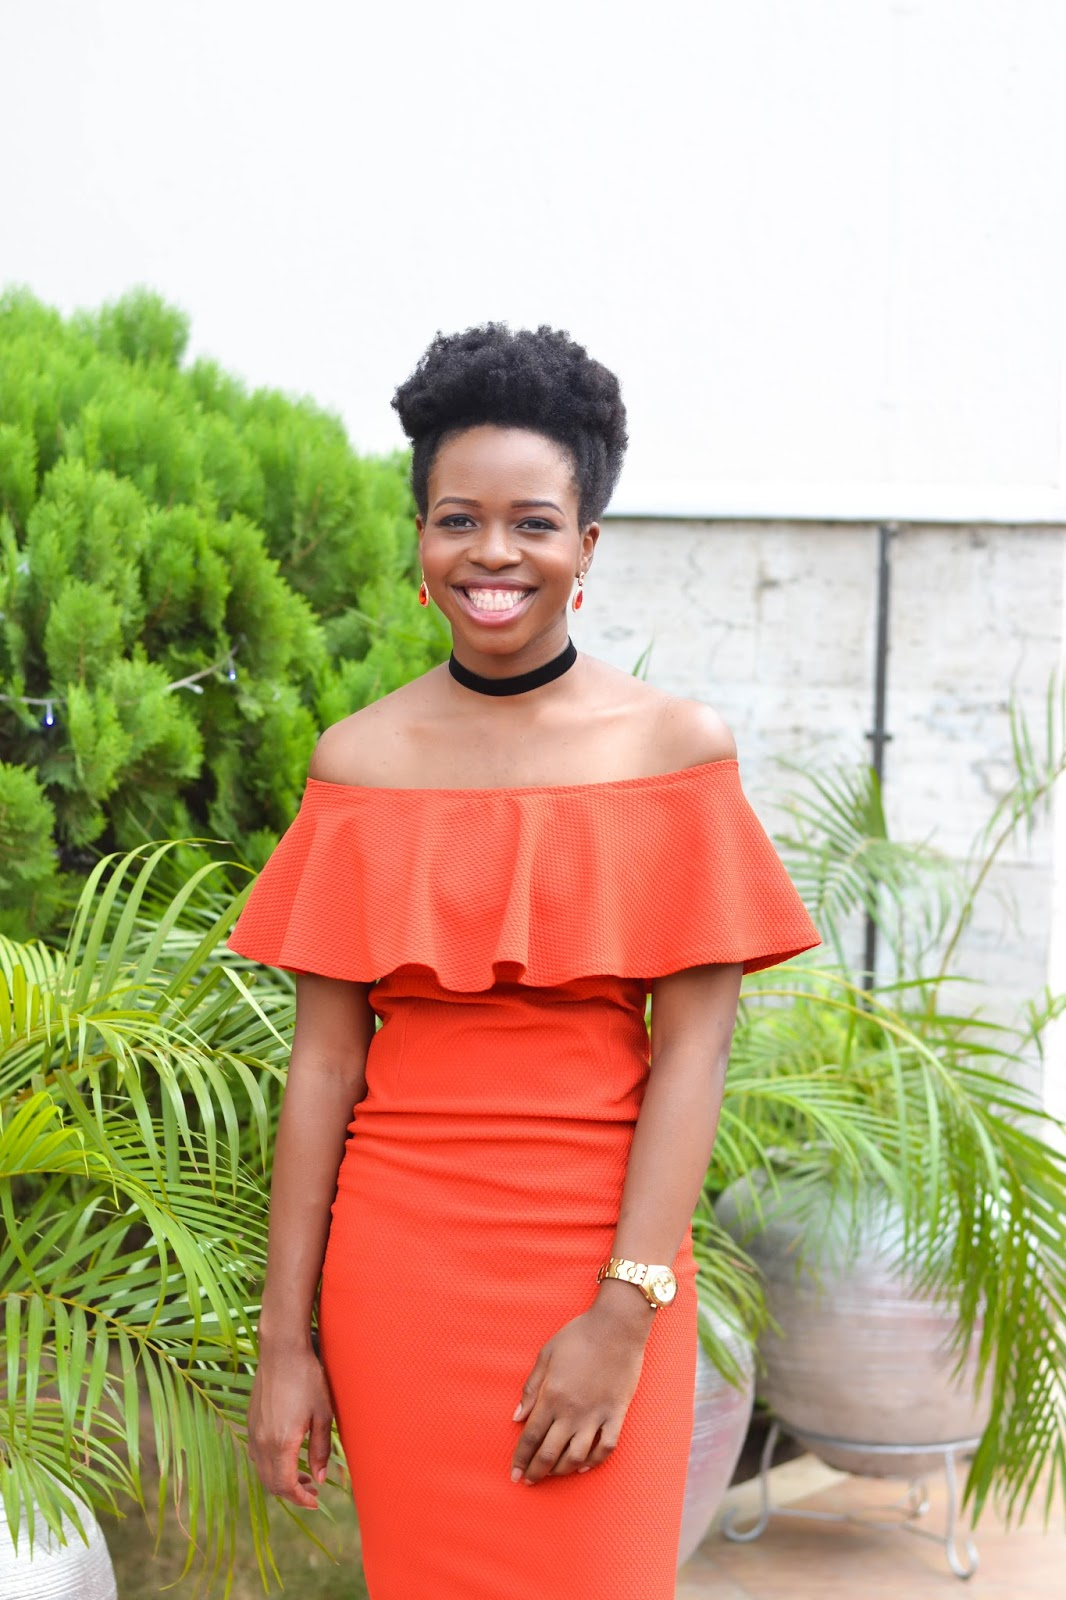 Red Off Shoulder Dress on a Smiling Woman of Colour